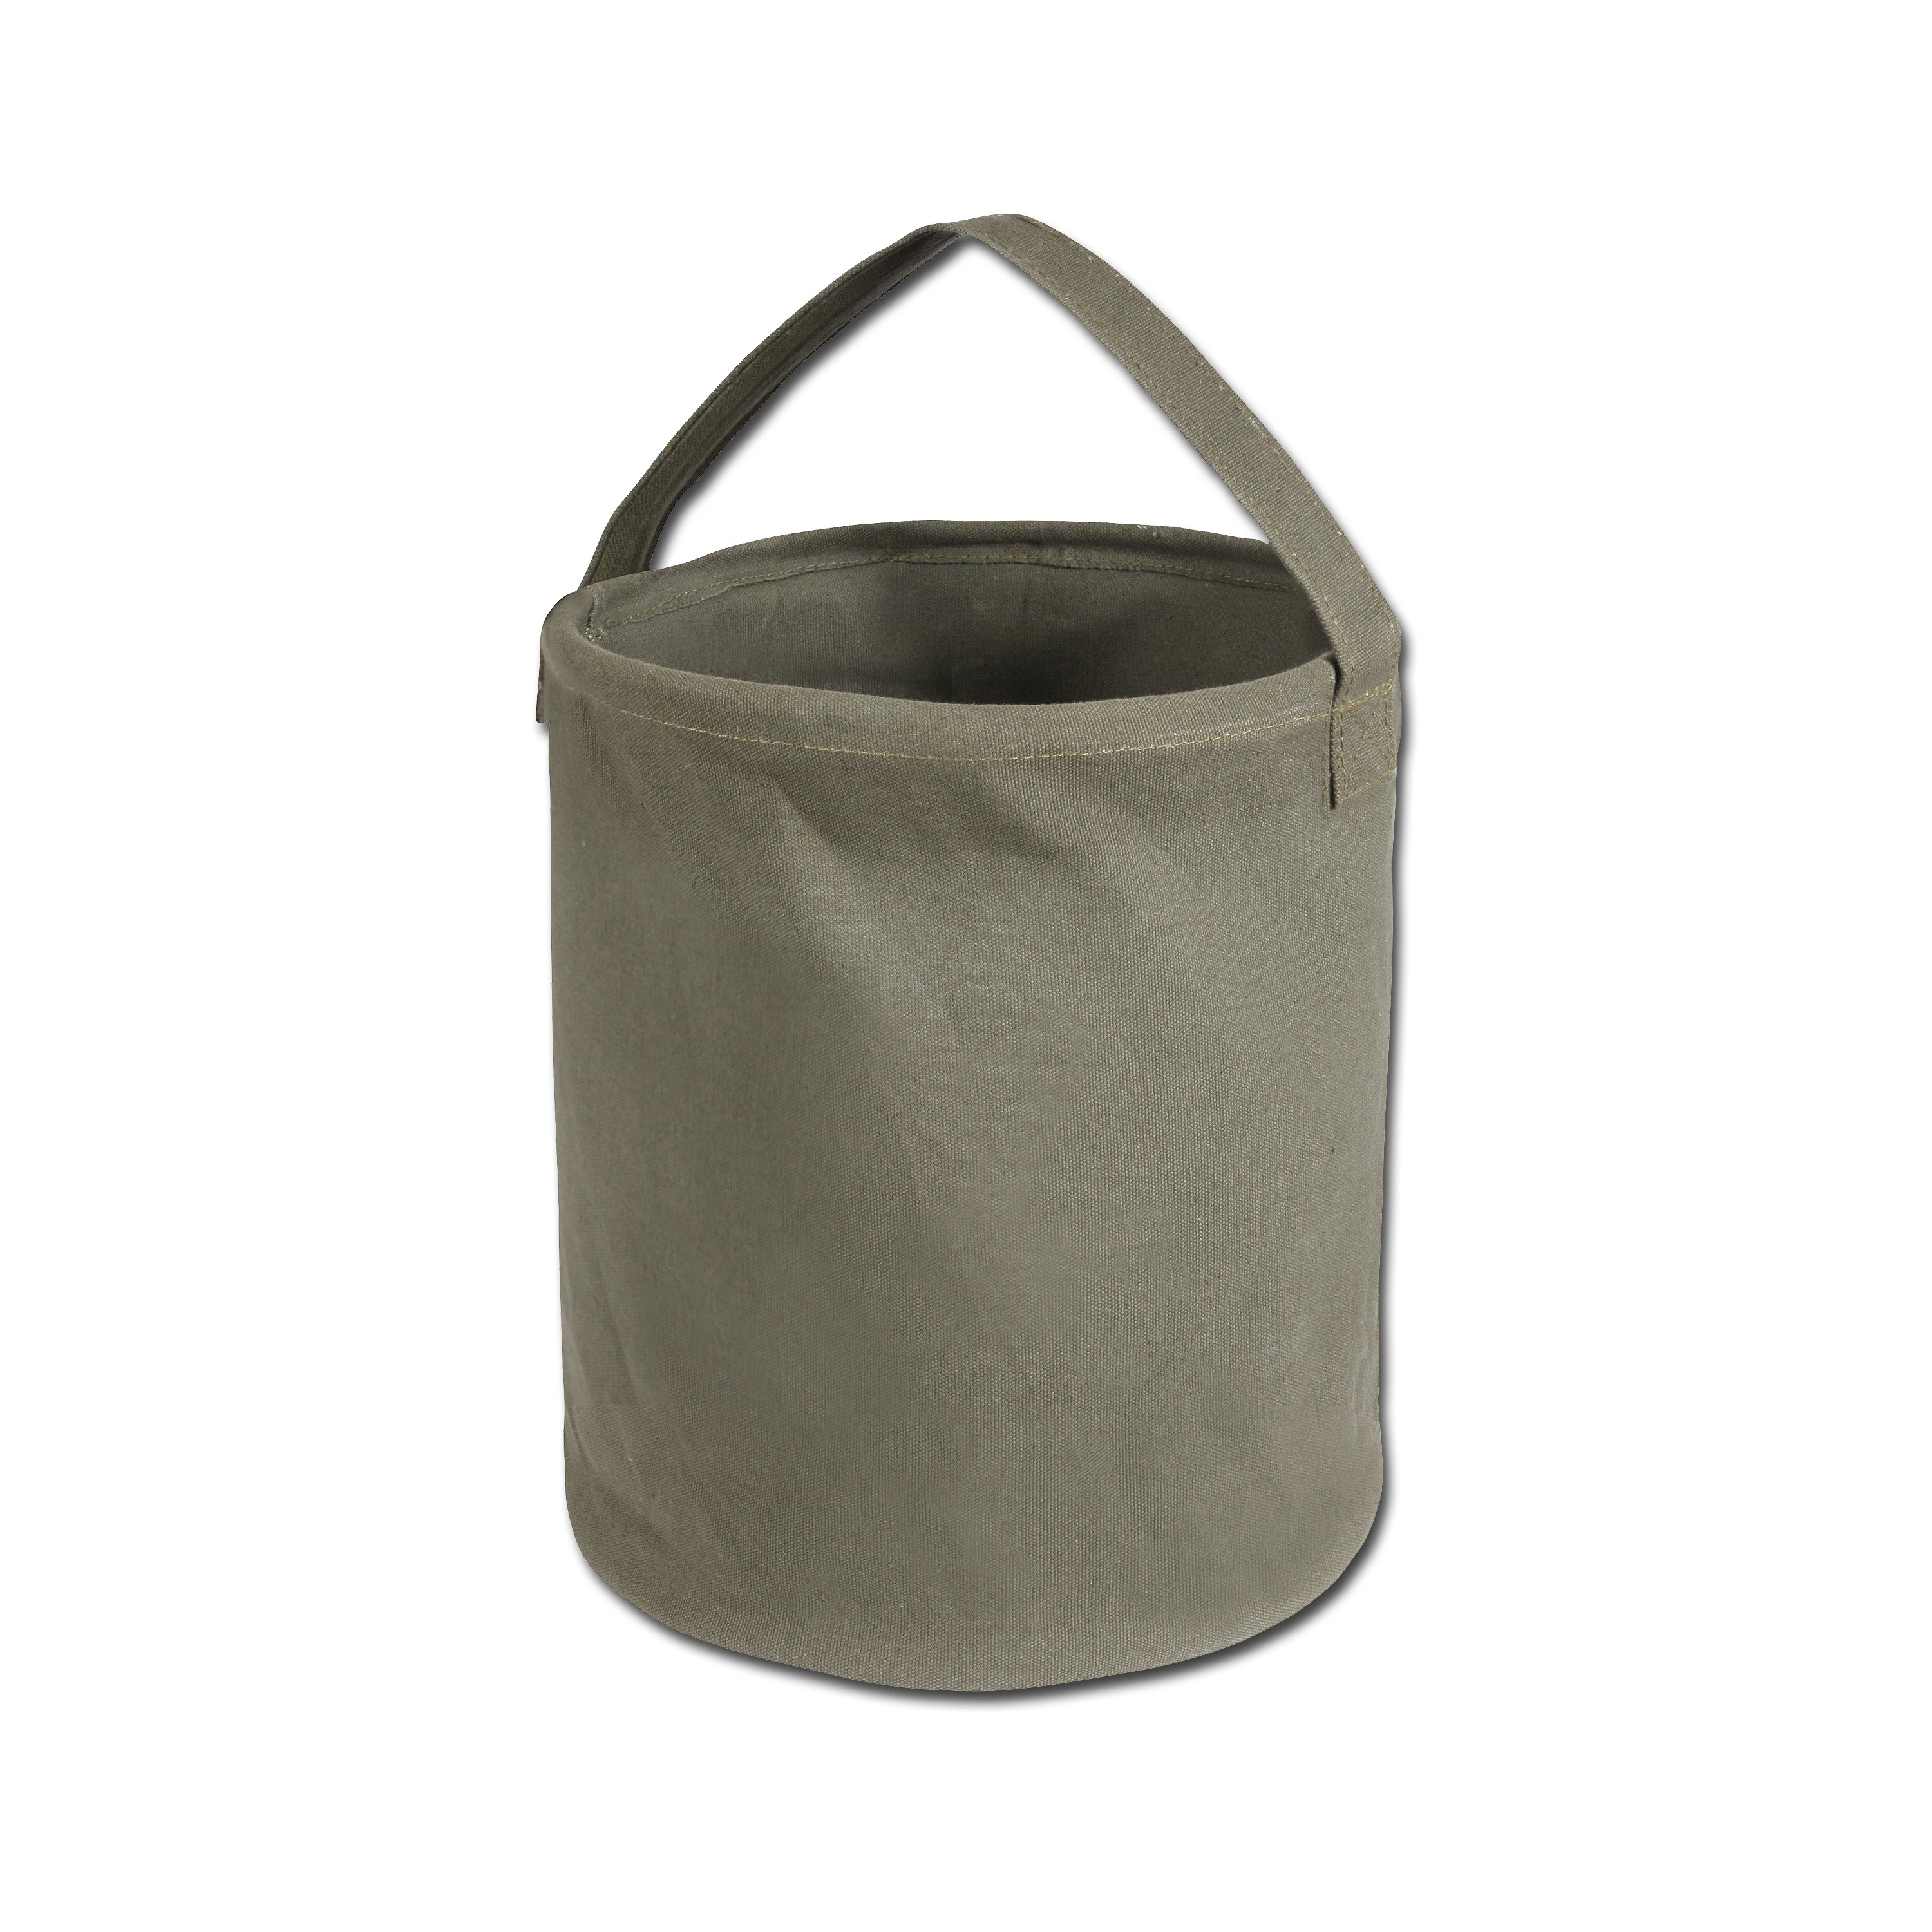 Water Bucket Rothco Canvas Large olive